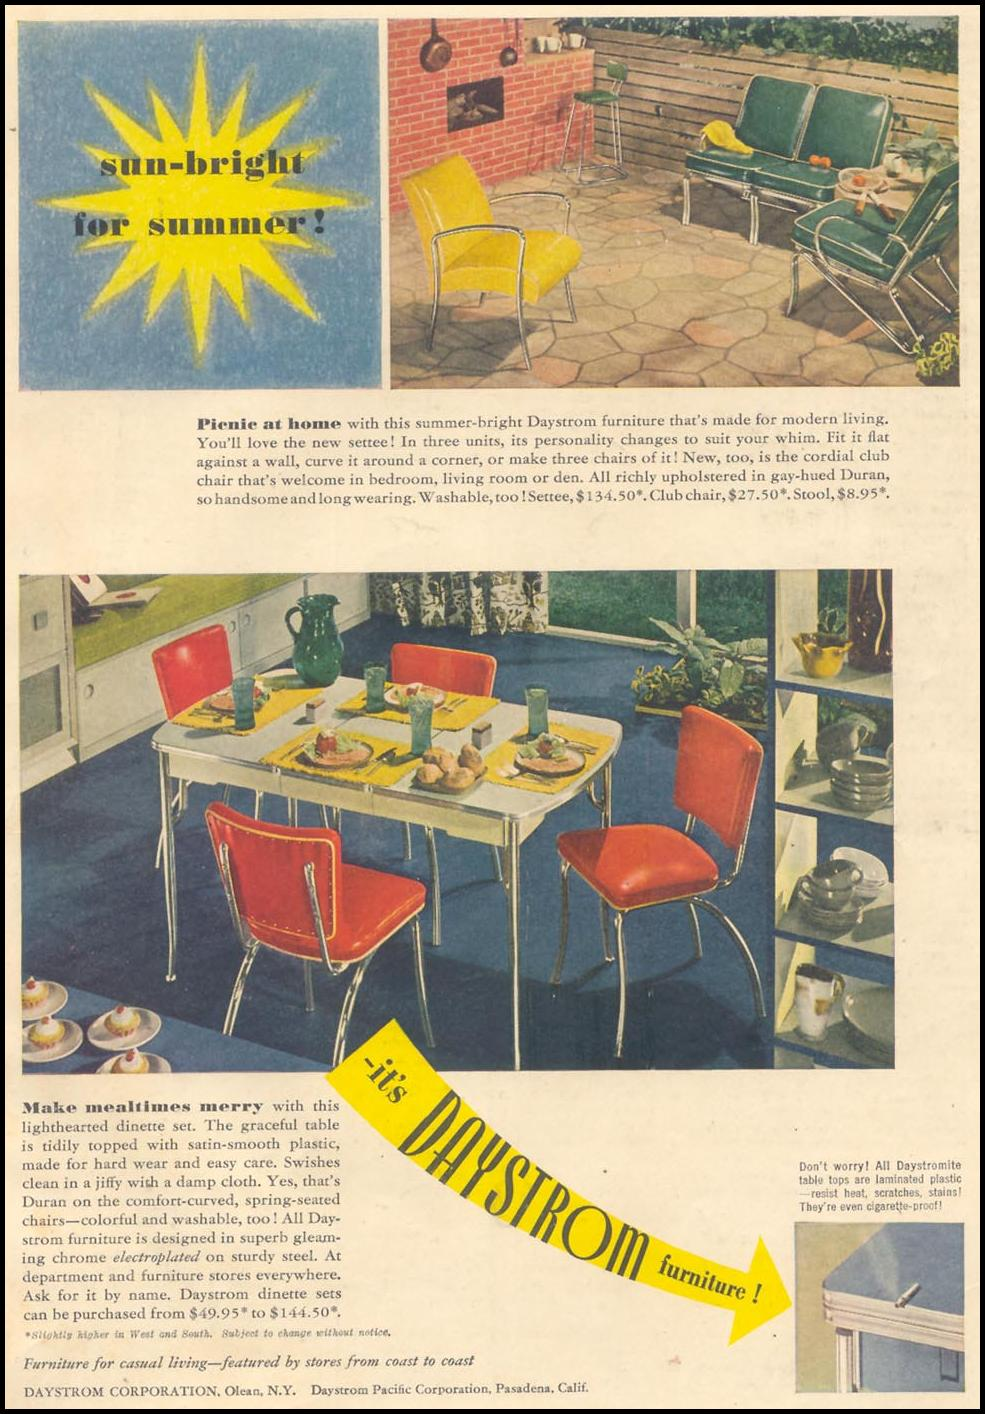 DAYSTROM CHROME FURNITURE GOOD HOUSEKEEPING 07/01/1949 INSIDE BACK